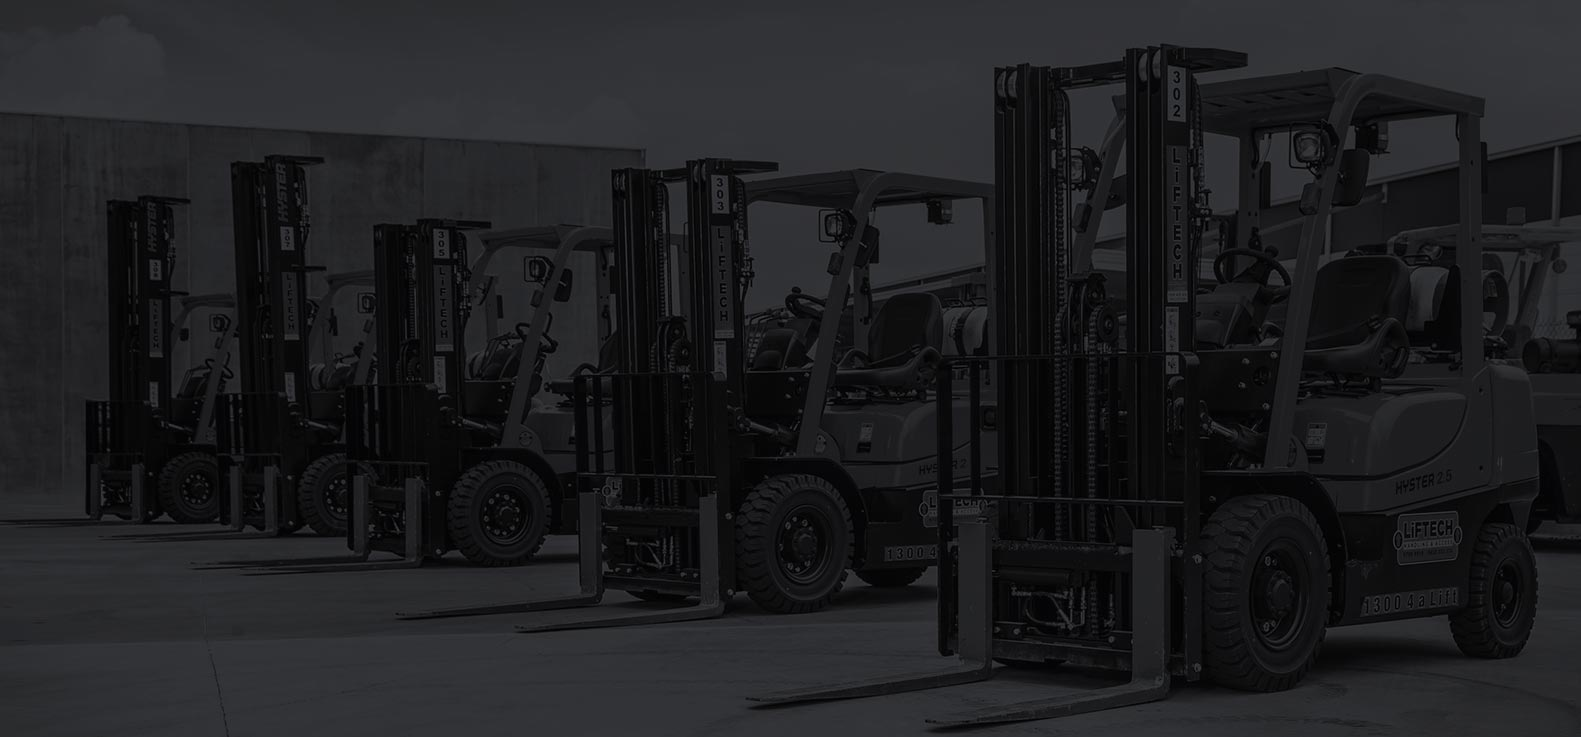 Forklift - Access Equipment Hire